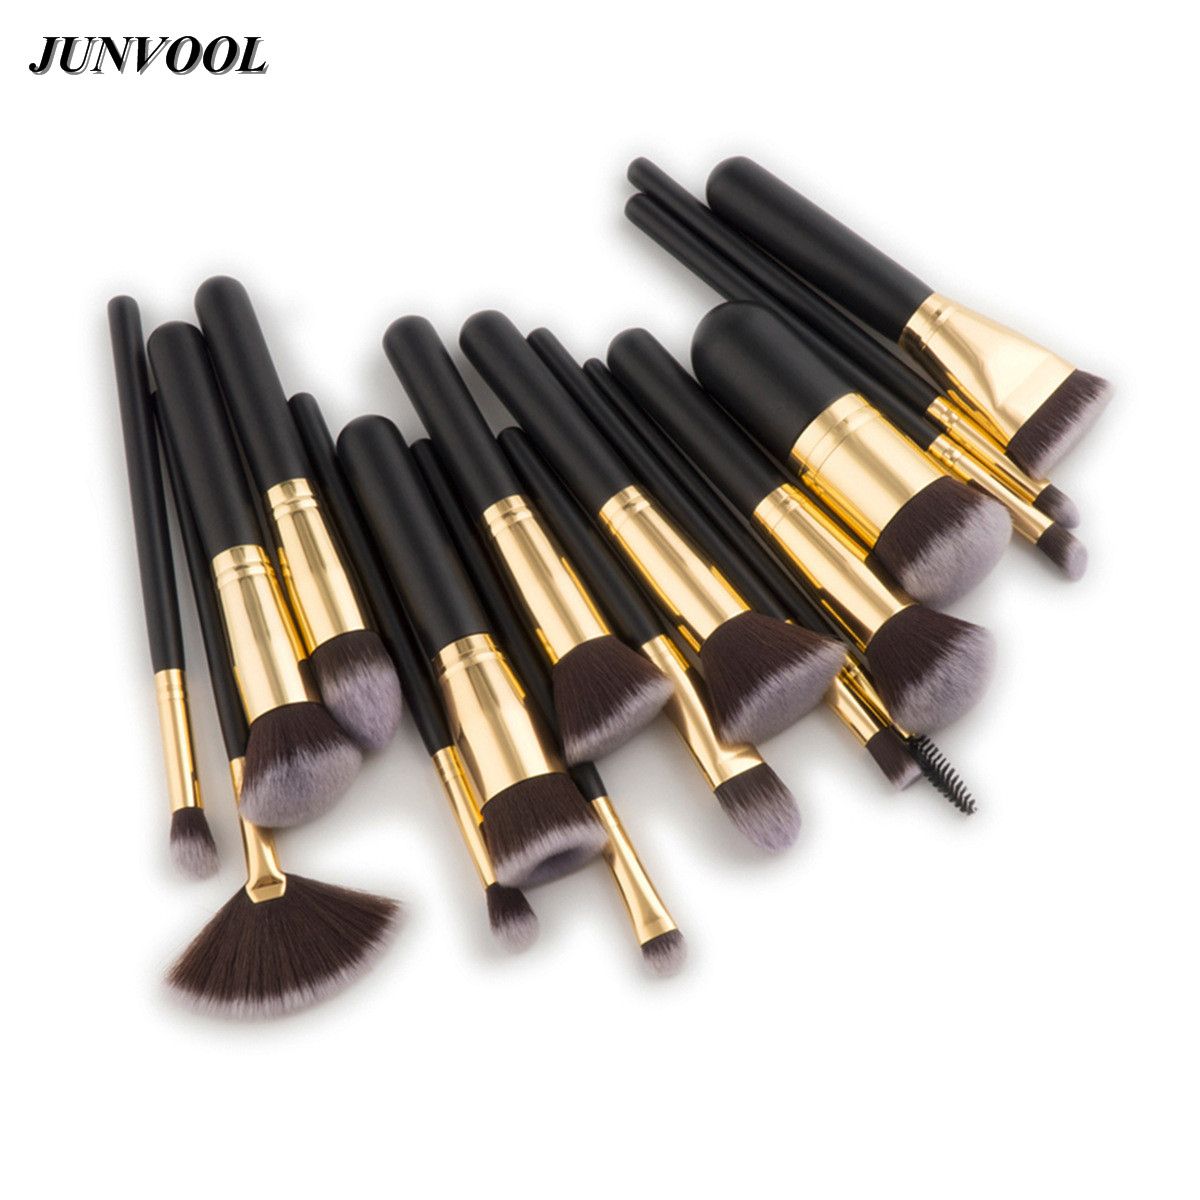 17pcs Makeup Brushes Tools Syntehtic Hair Black Gold Handle Portable Brush Set High Quality Beauty Full Professional Make Up Kit nature hair makeup brush set 22pcs high quality red beauty tools kit with case